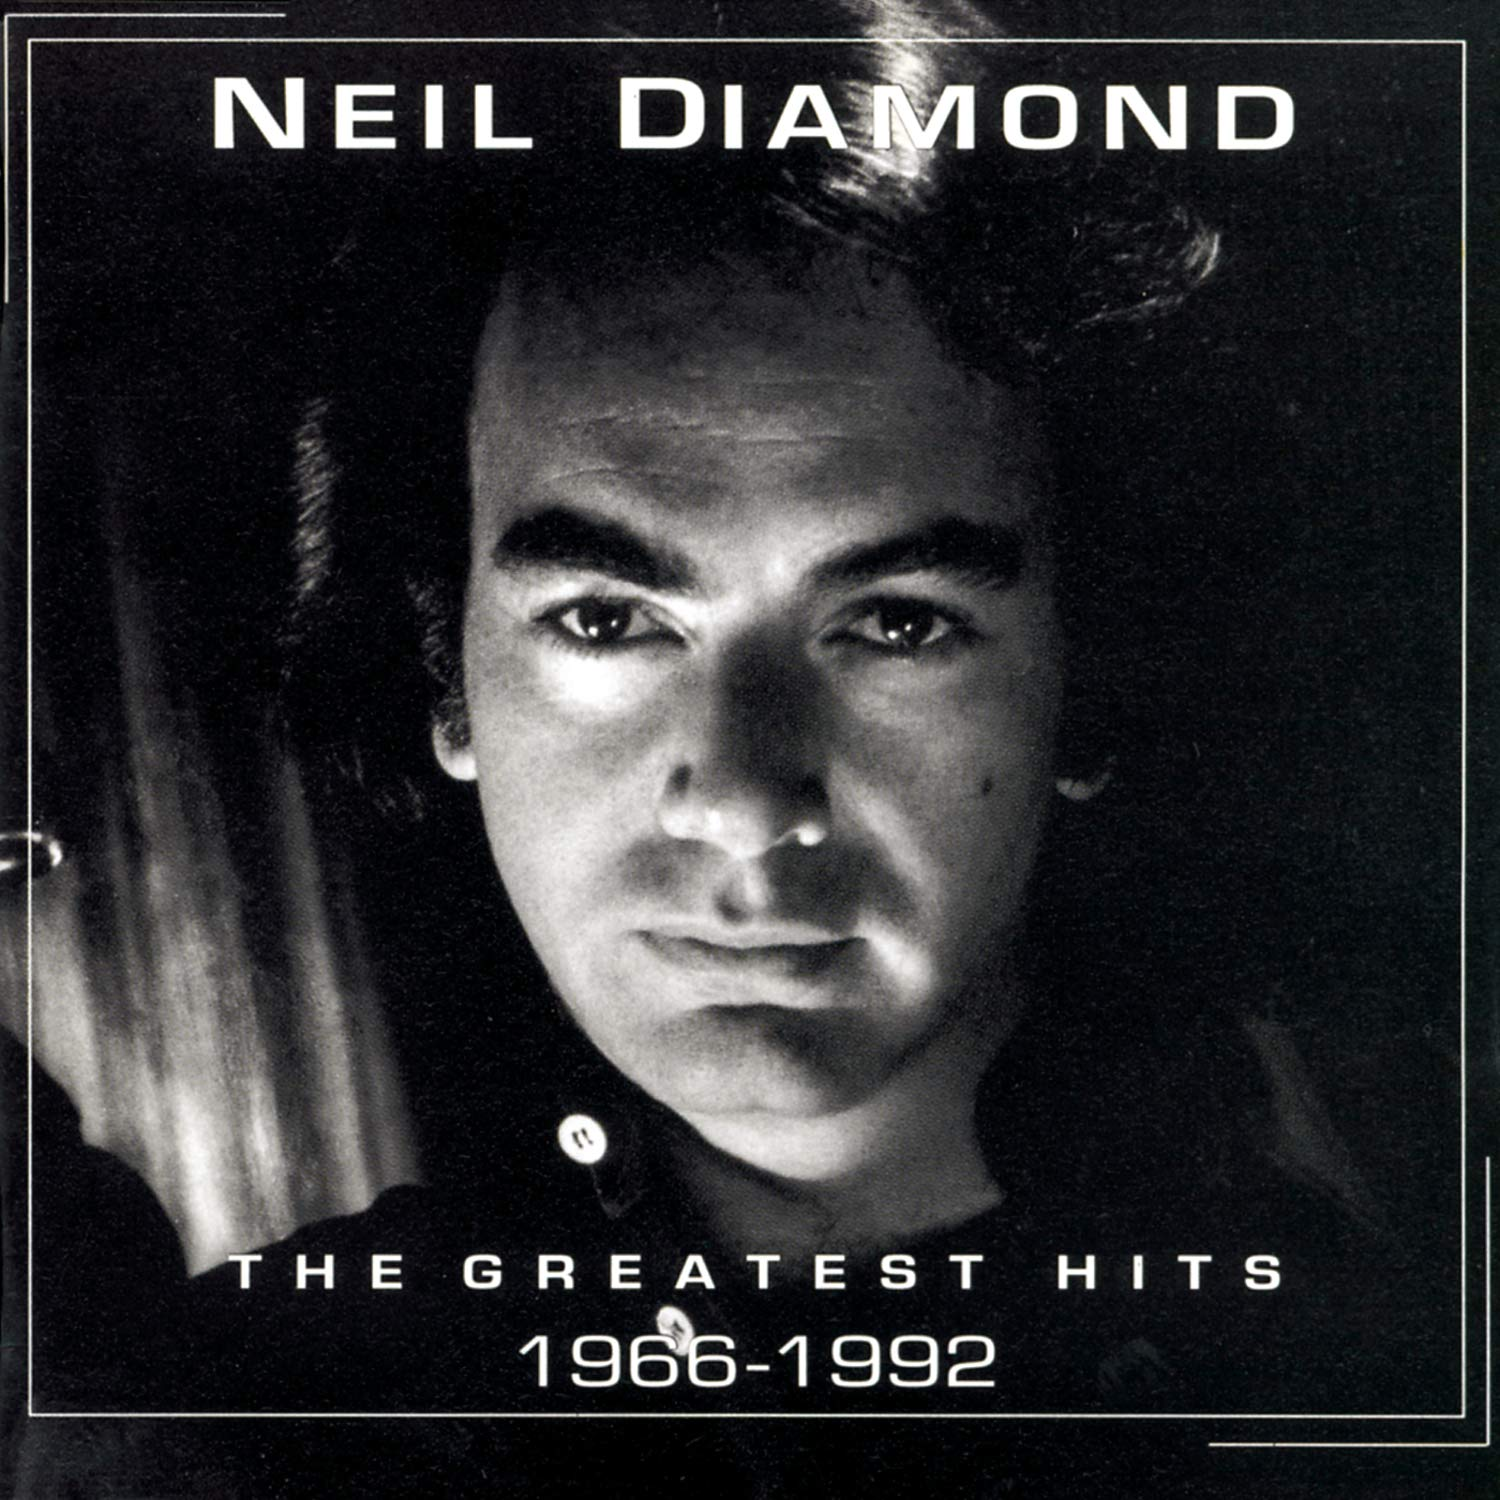 Neil Diamond - The Greatest Hits (1966-1992) by Legacy